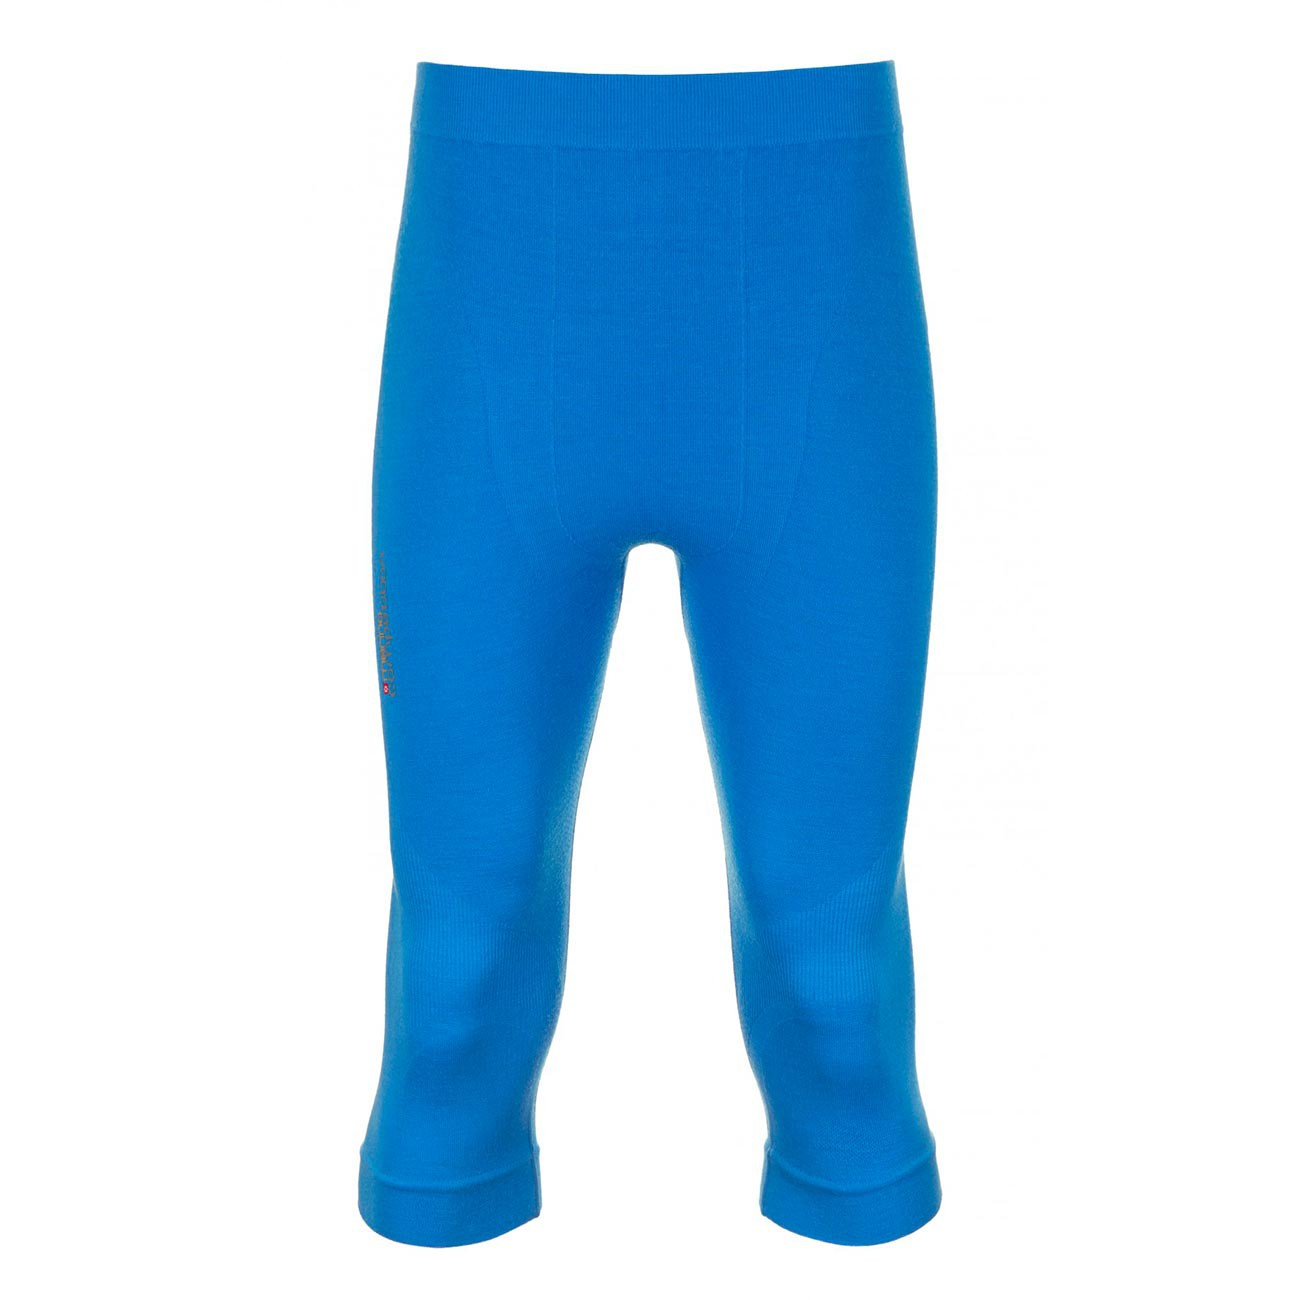 Spodky Ortovox Competition Short Pants blue ocean